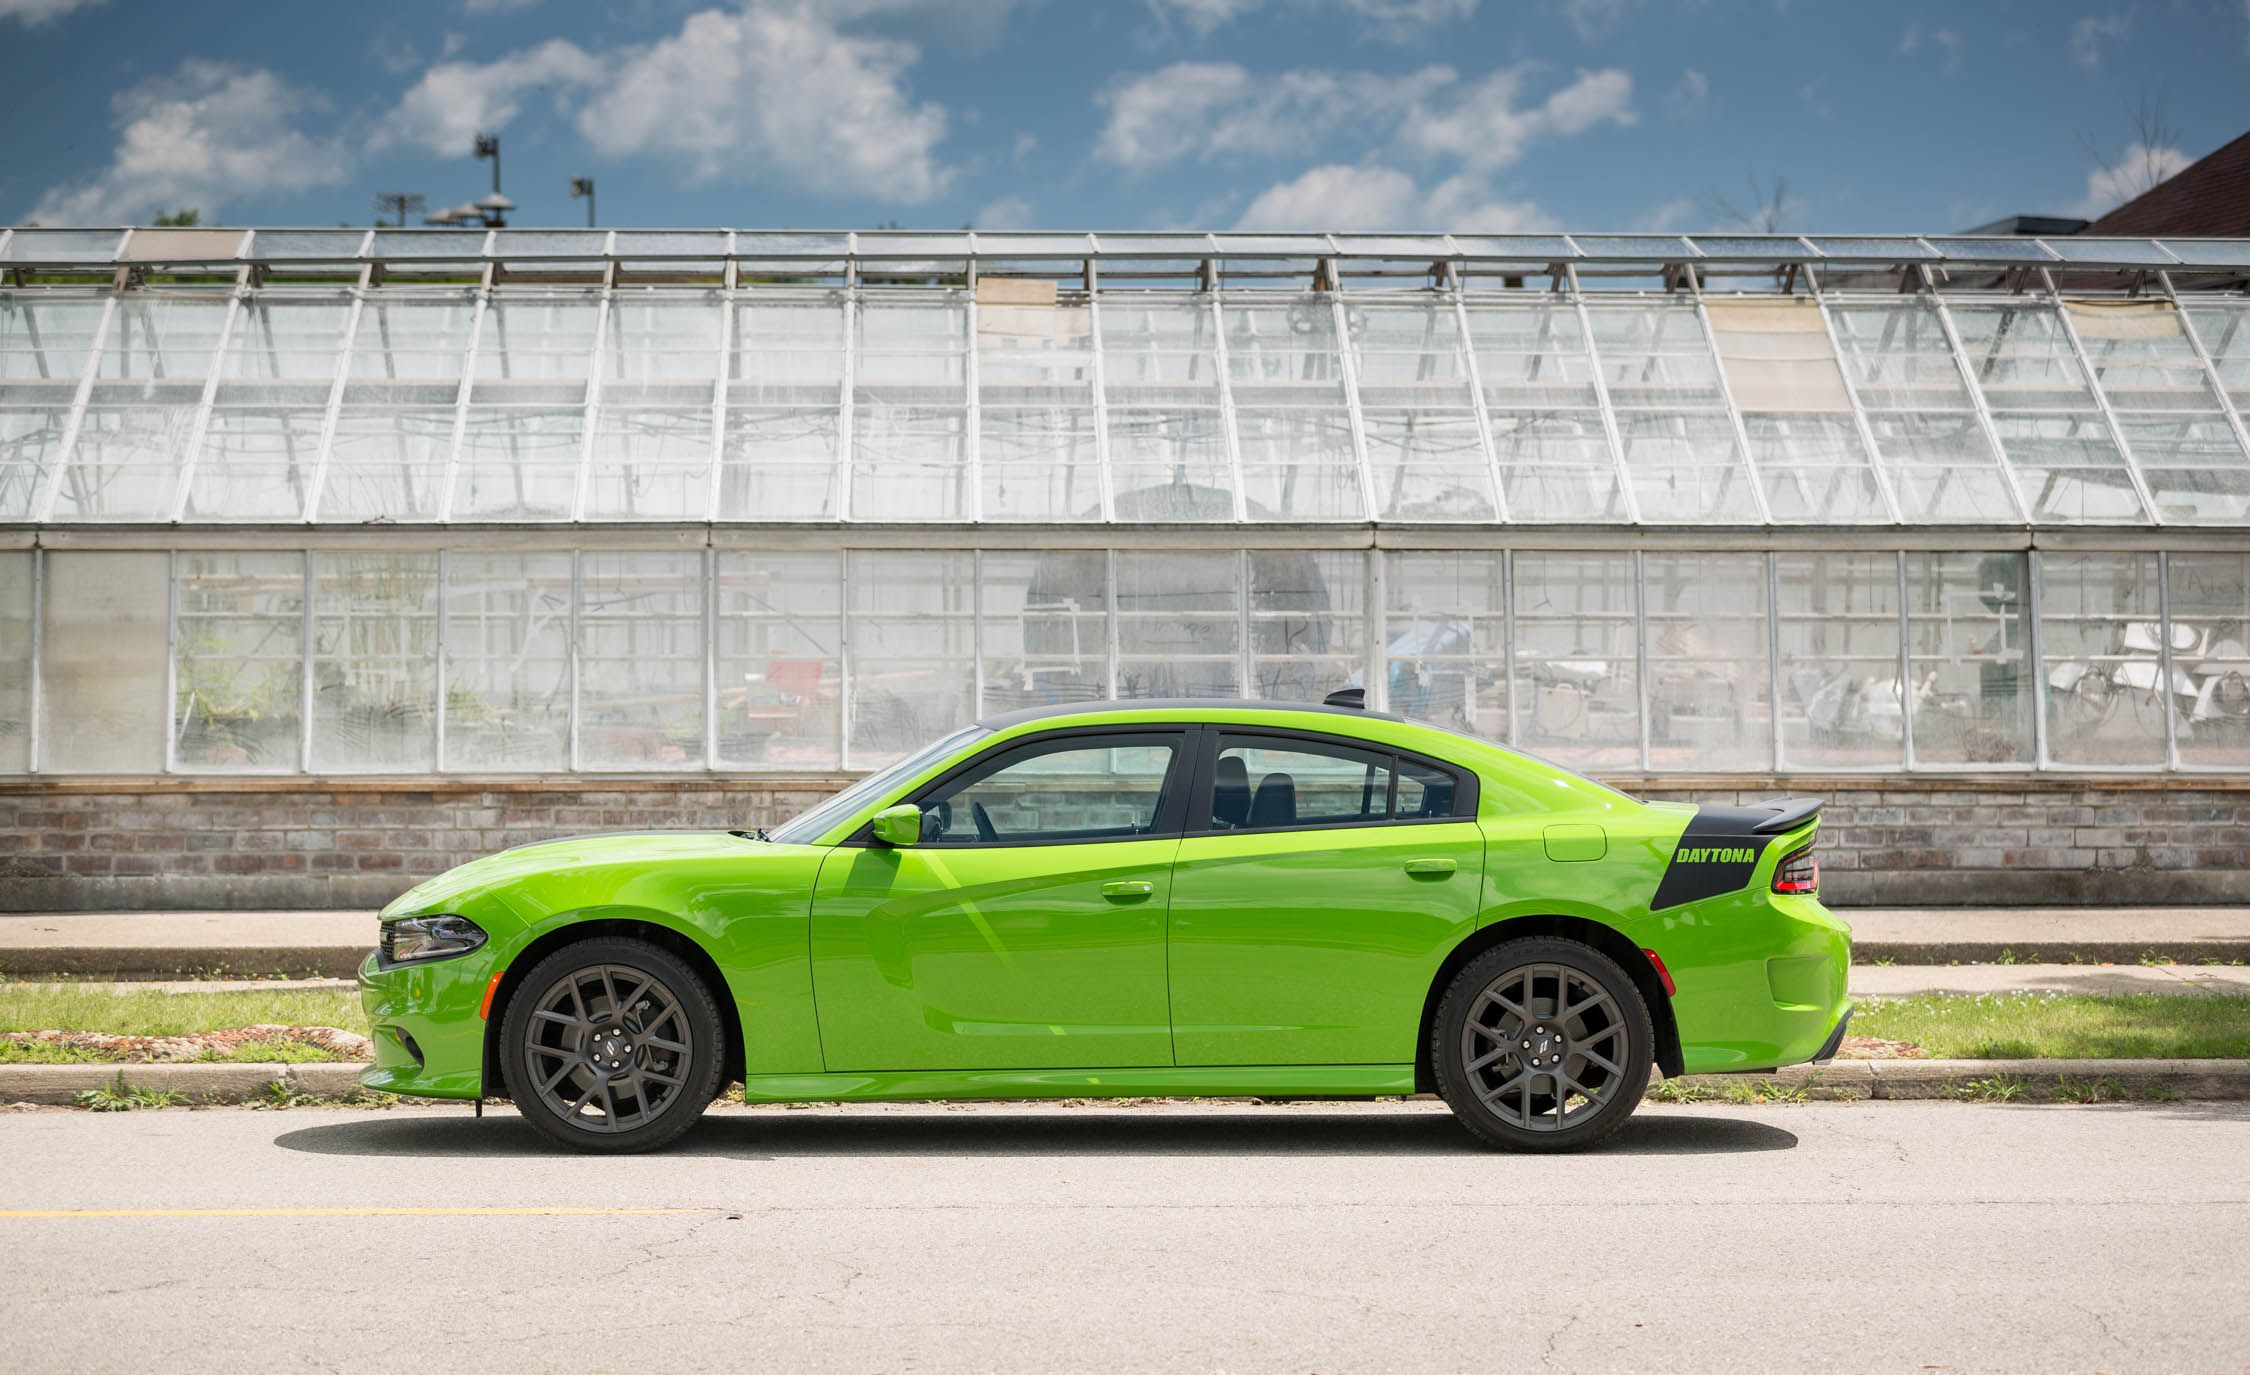 2017-dodge-charger-interior-review-car-and-driver-photo-699335-s-original Interesting Info About Dodge Charger Safety Rating with Exciting Gallery Cars Review